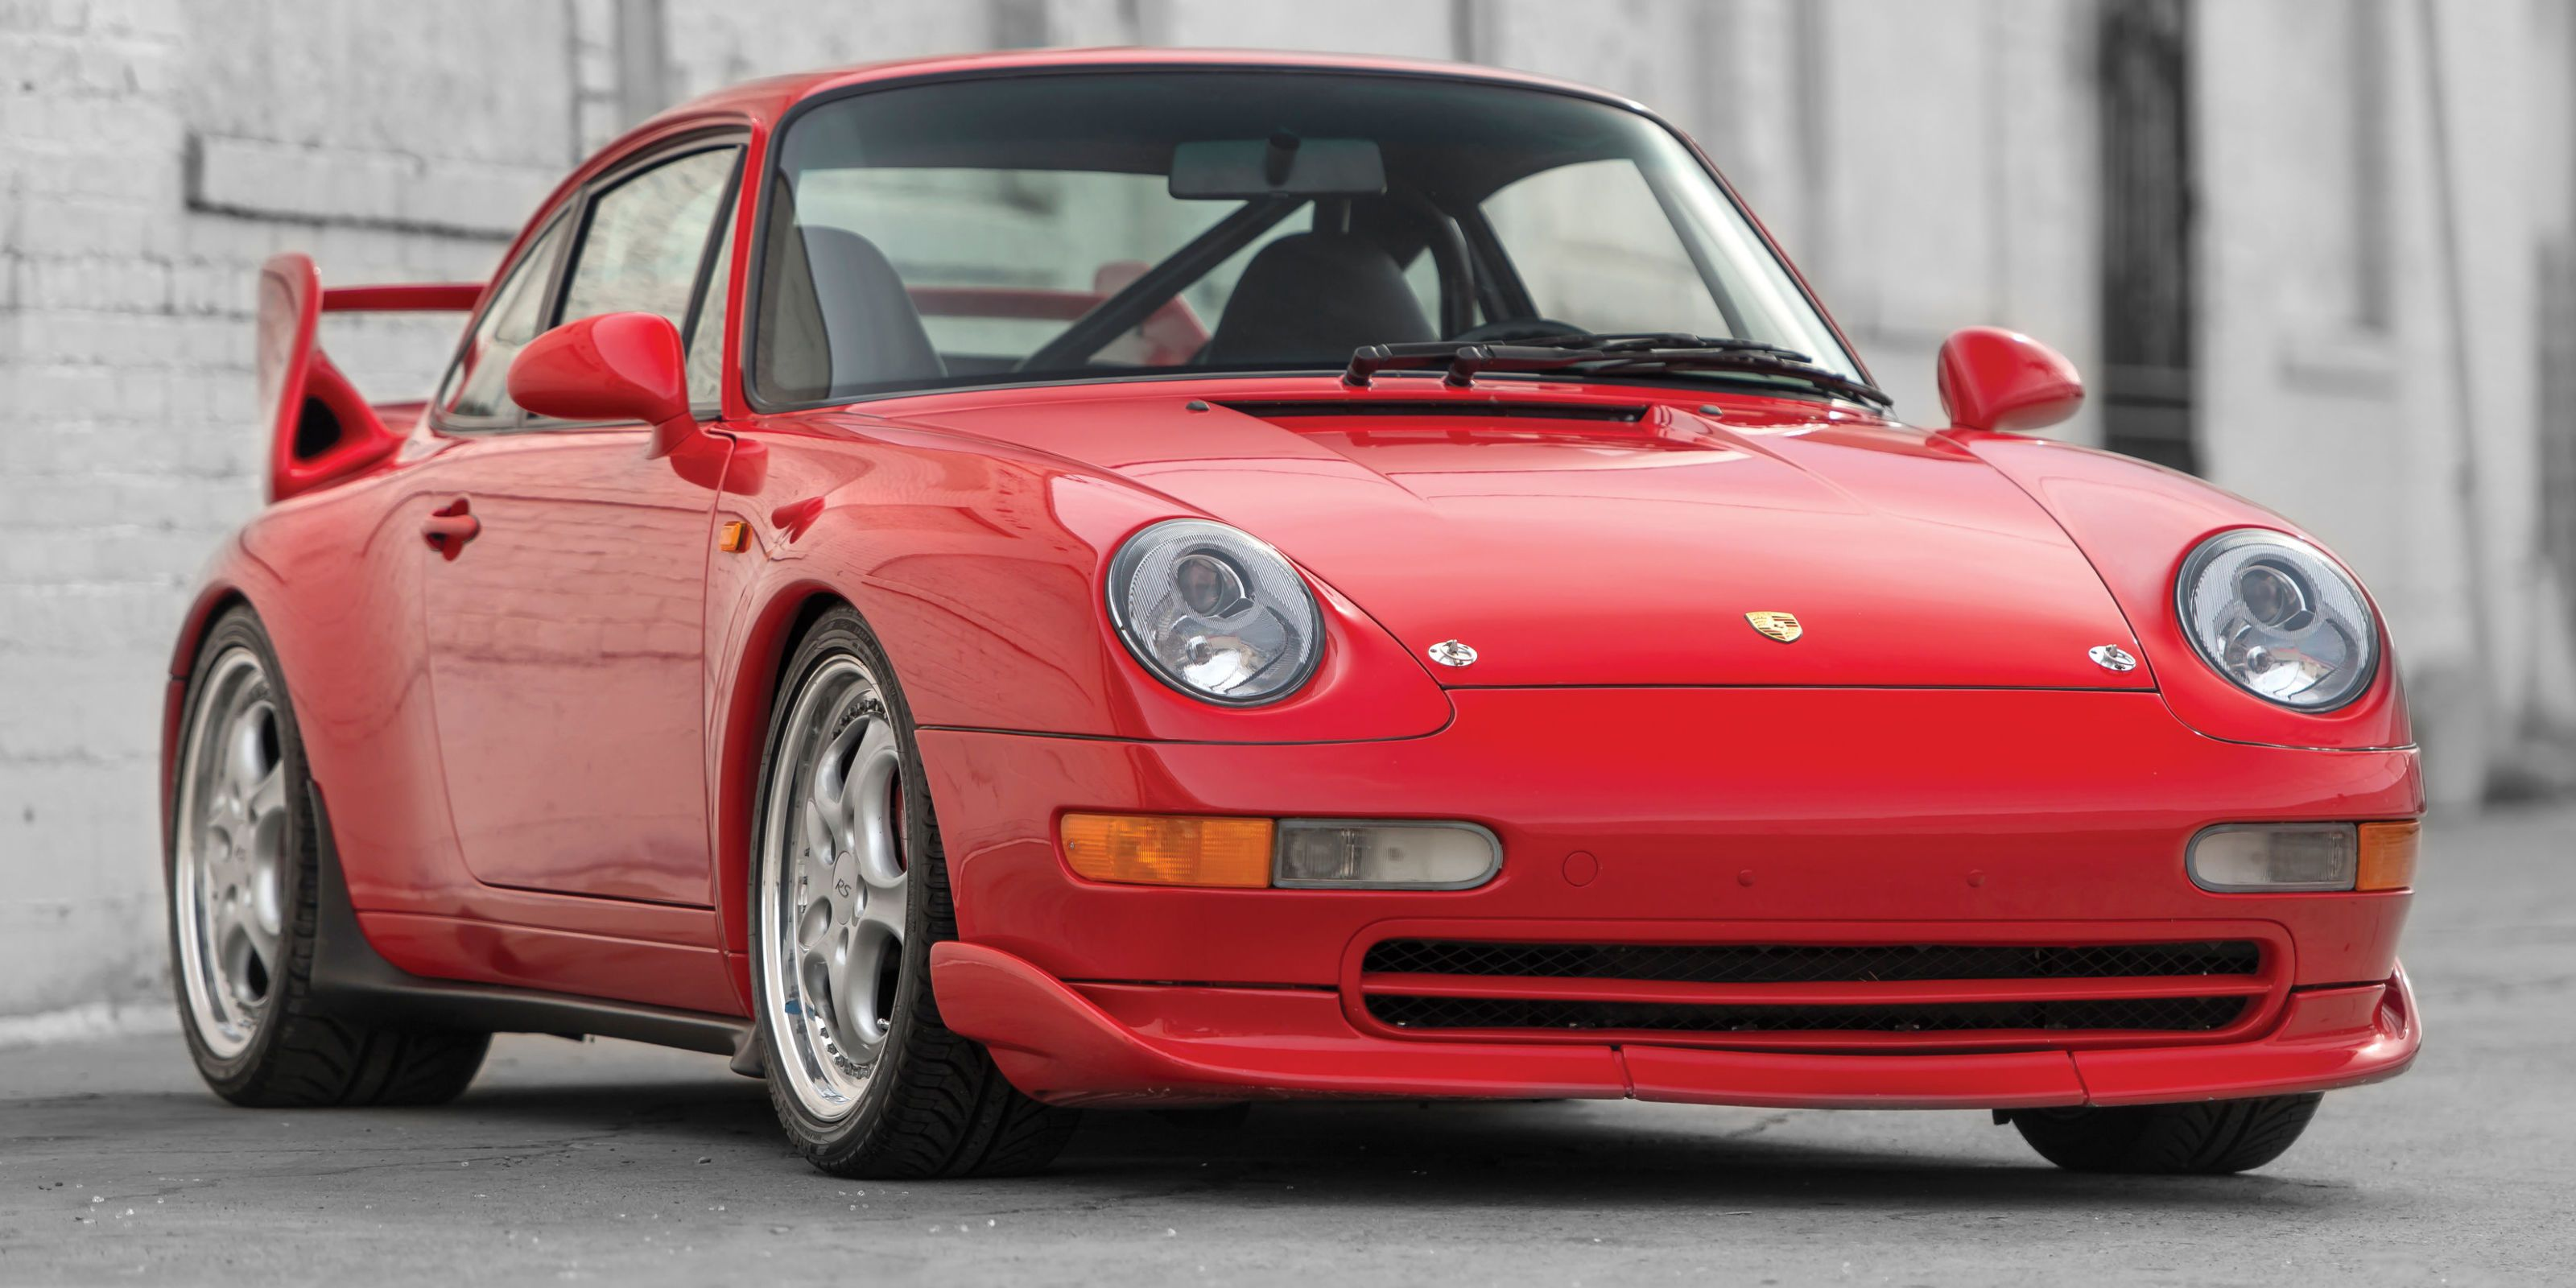 This Ultra-Rare 1996 Porsche 911 3.8 RS Could be Worth $450k